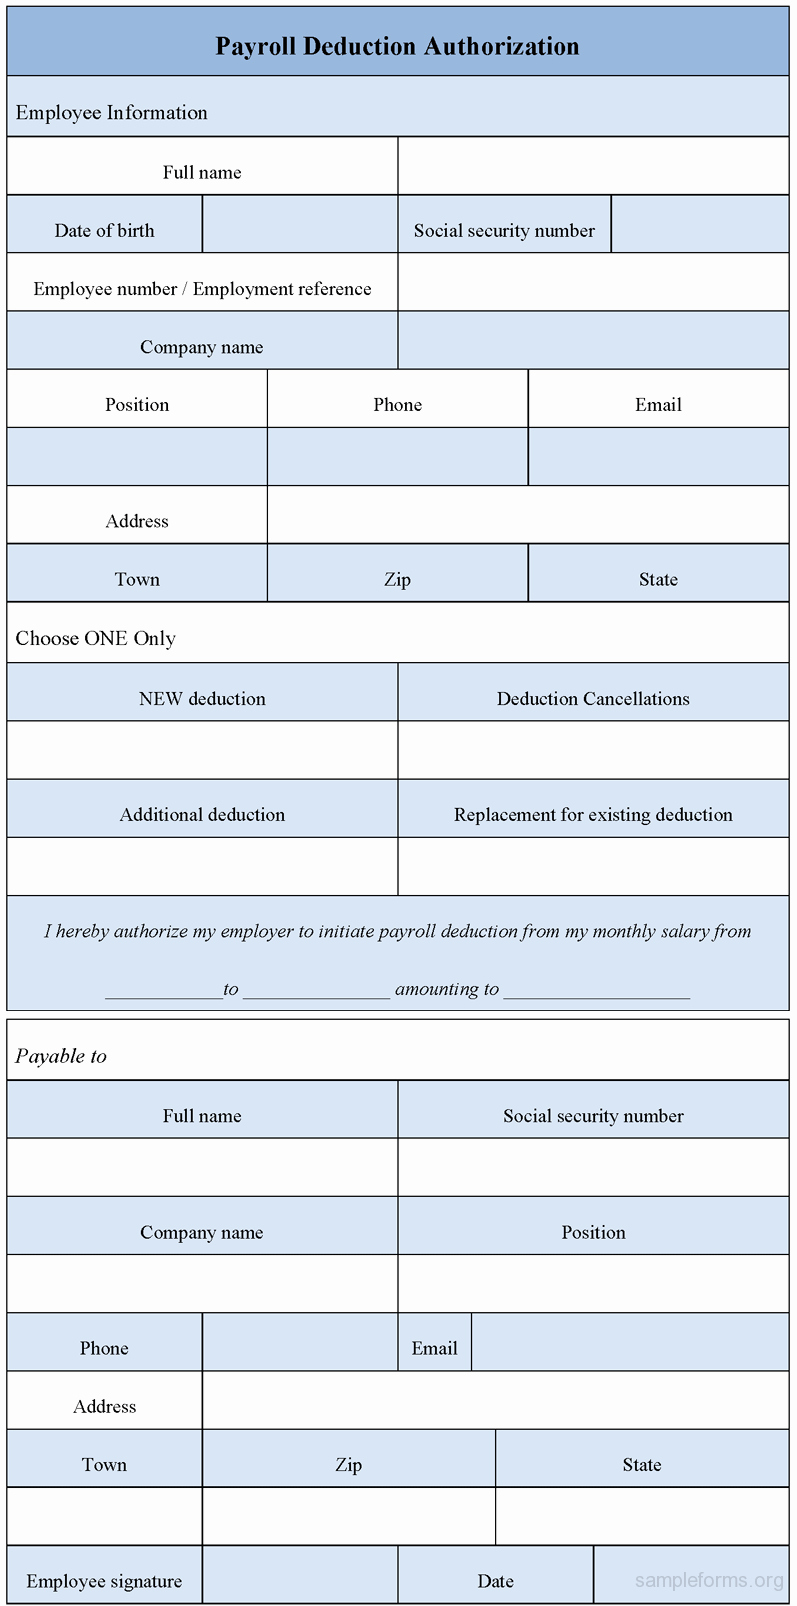 Payroll Deduction Authorization form Luxury Payroll Deduction Authorization form Sample forms